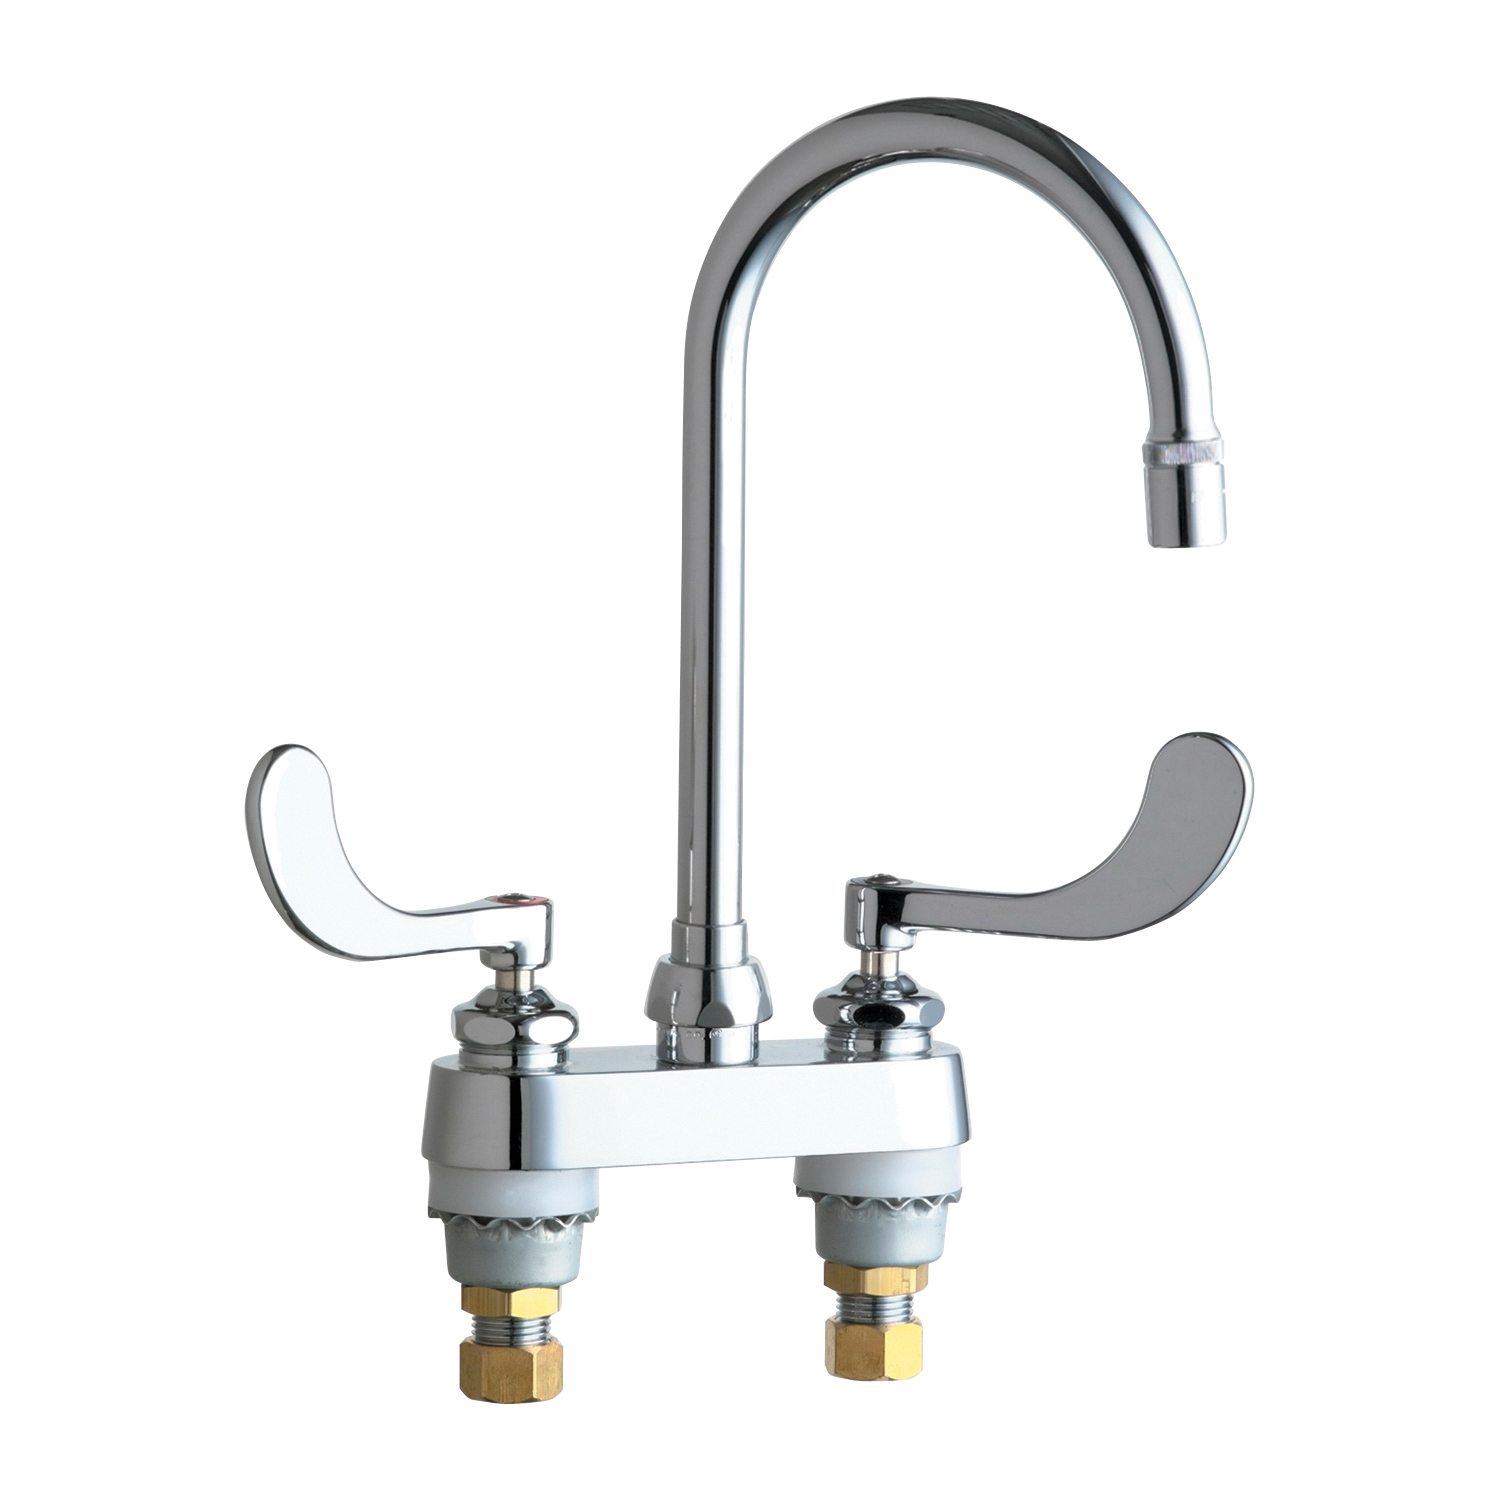 Chicago Faucet® 895-317GN2AE29ABCP Lavatory Sink Faucet, Chrome Plated, 2 Handles, 2.2 gpm